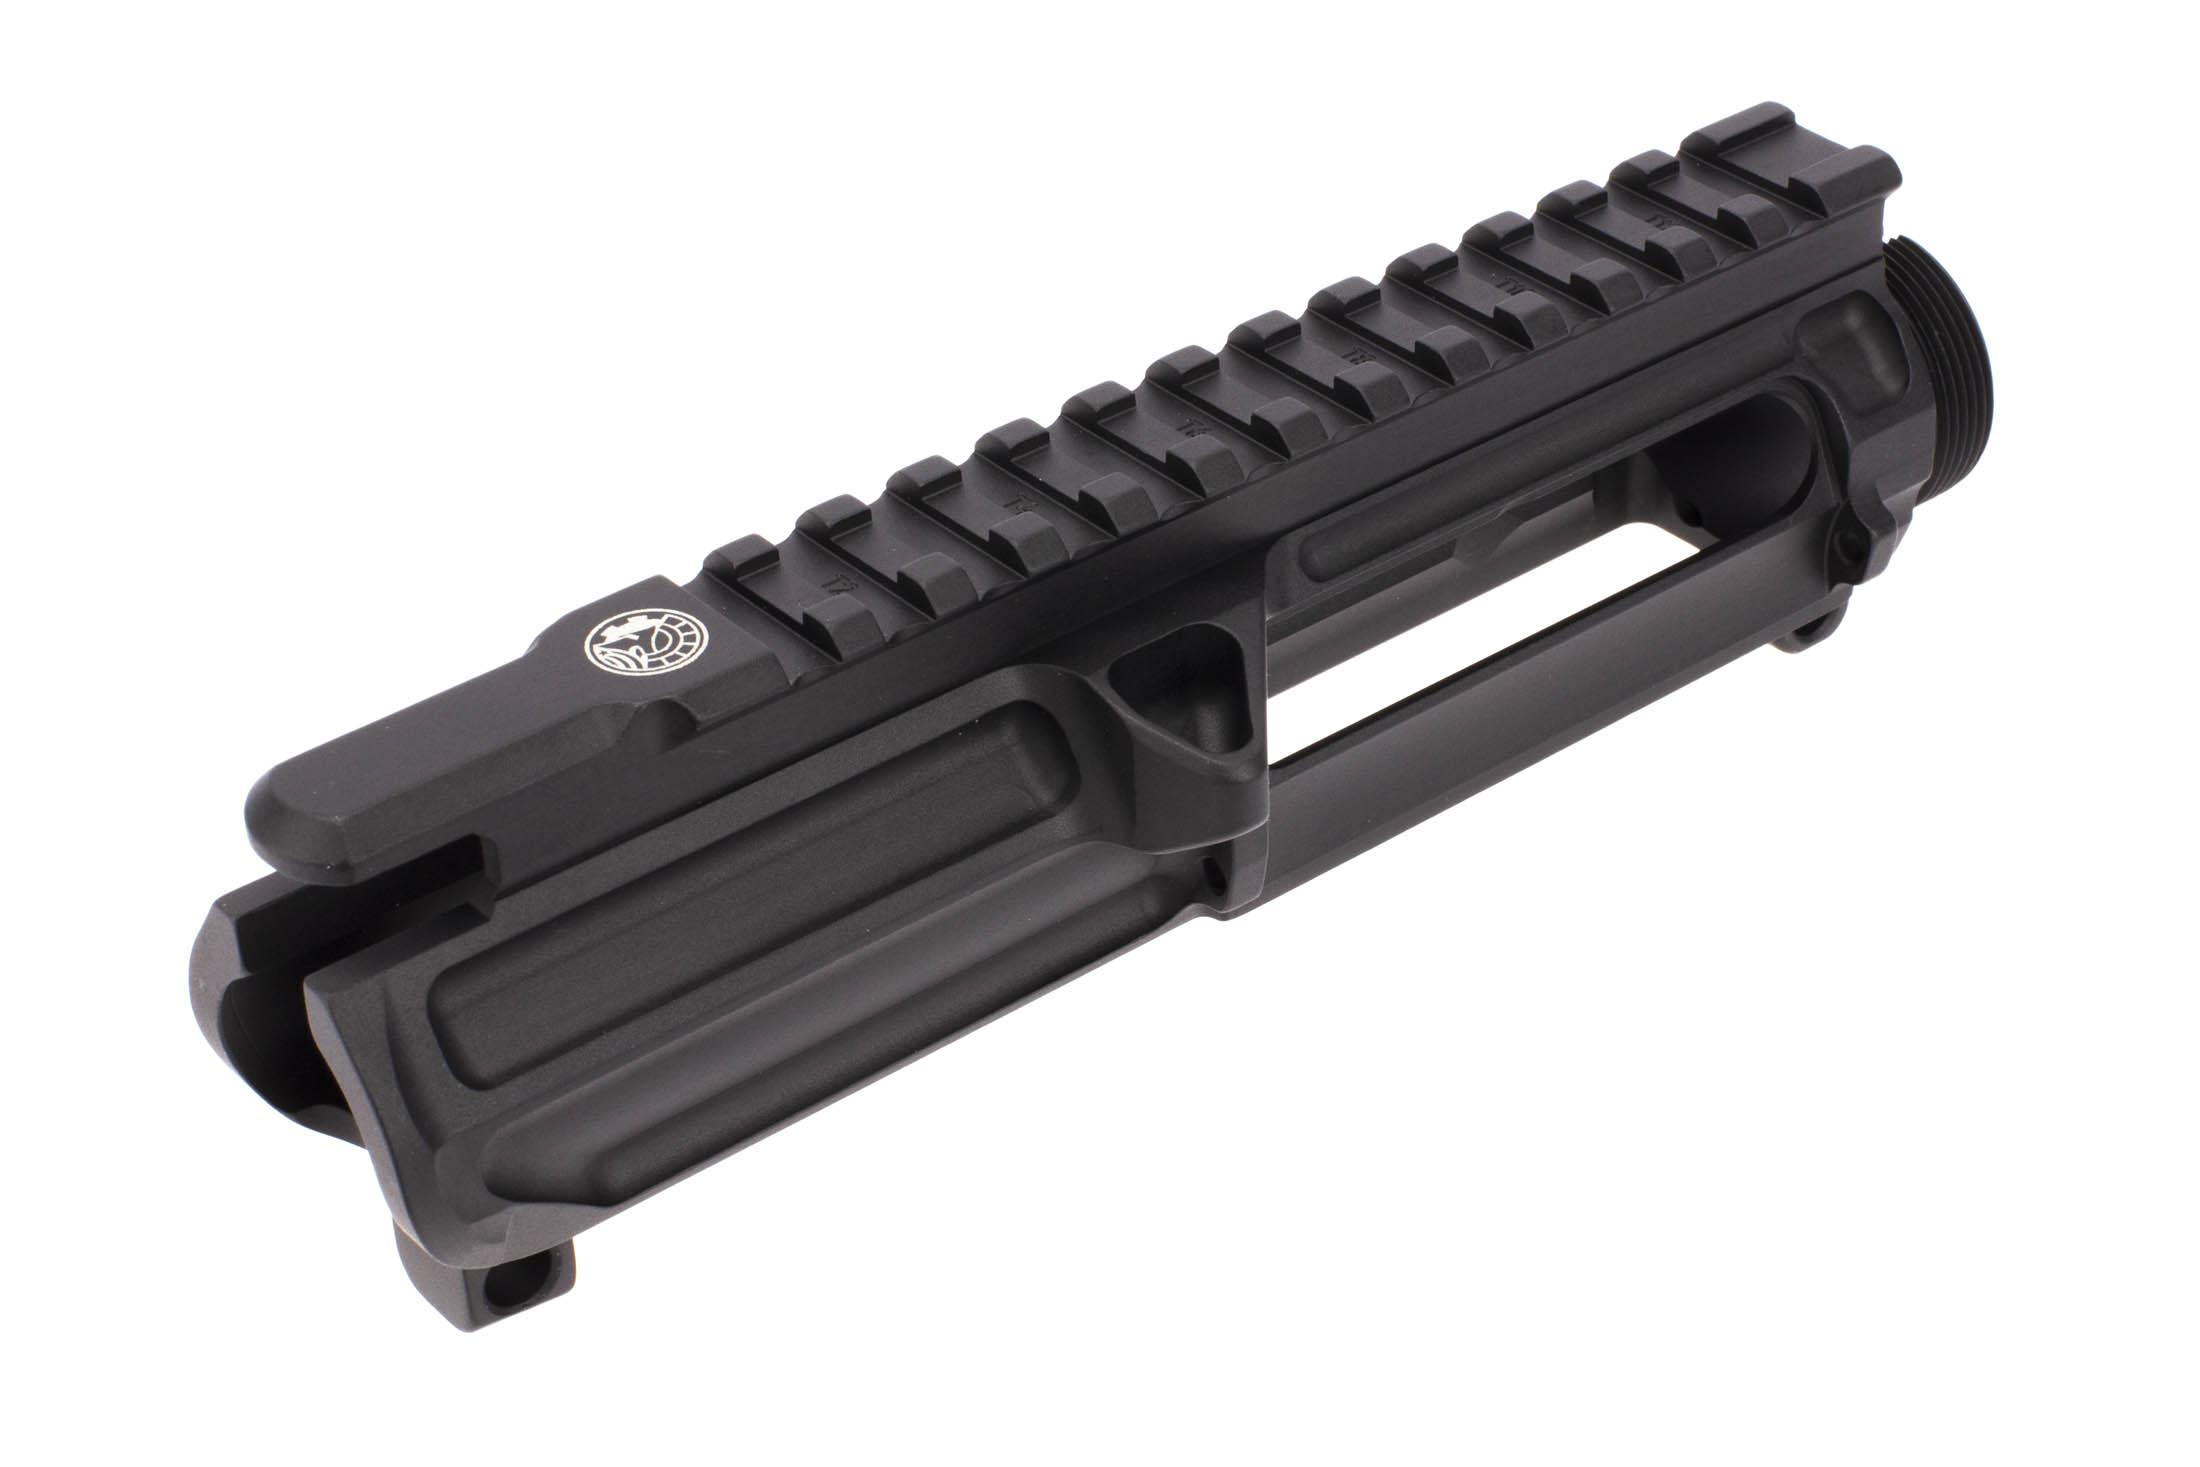 The Battle Arms Development AR 15 upper receiver is compatible with Mil-Spec components